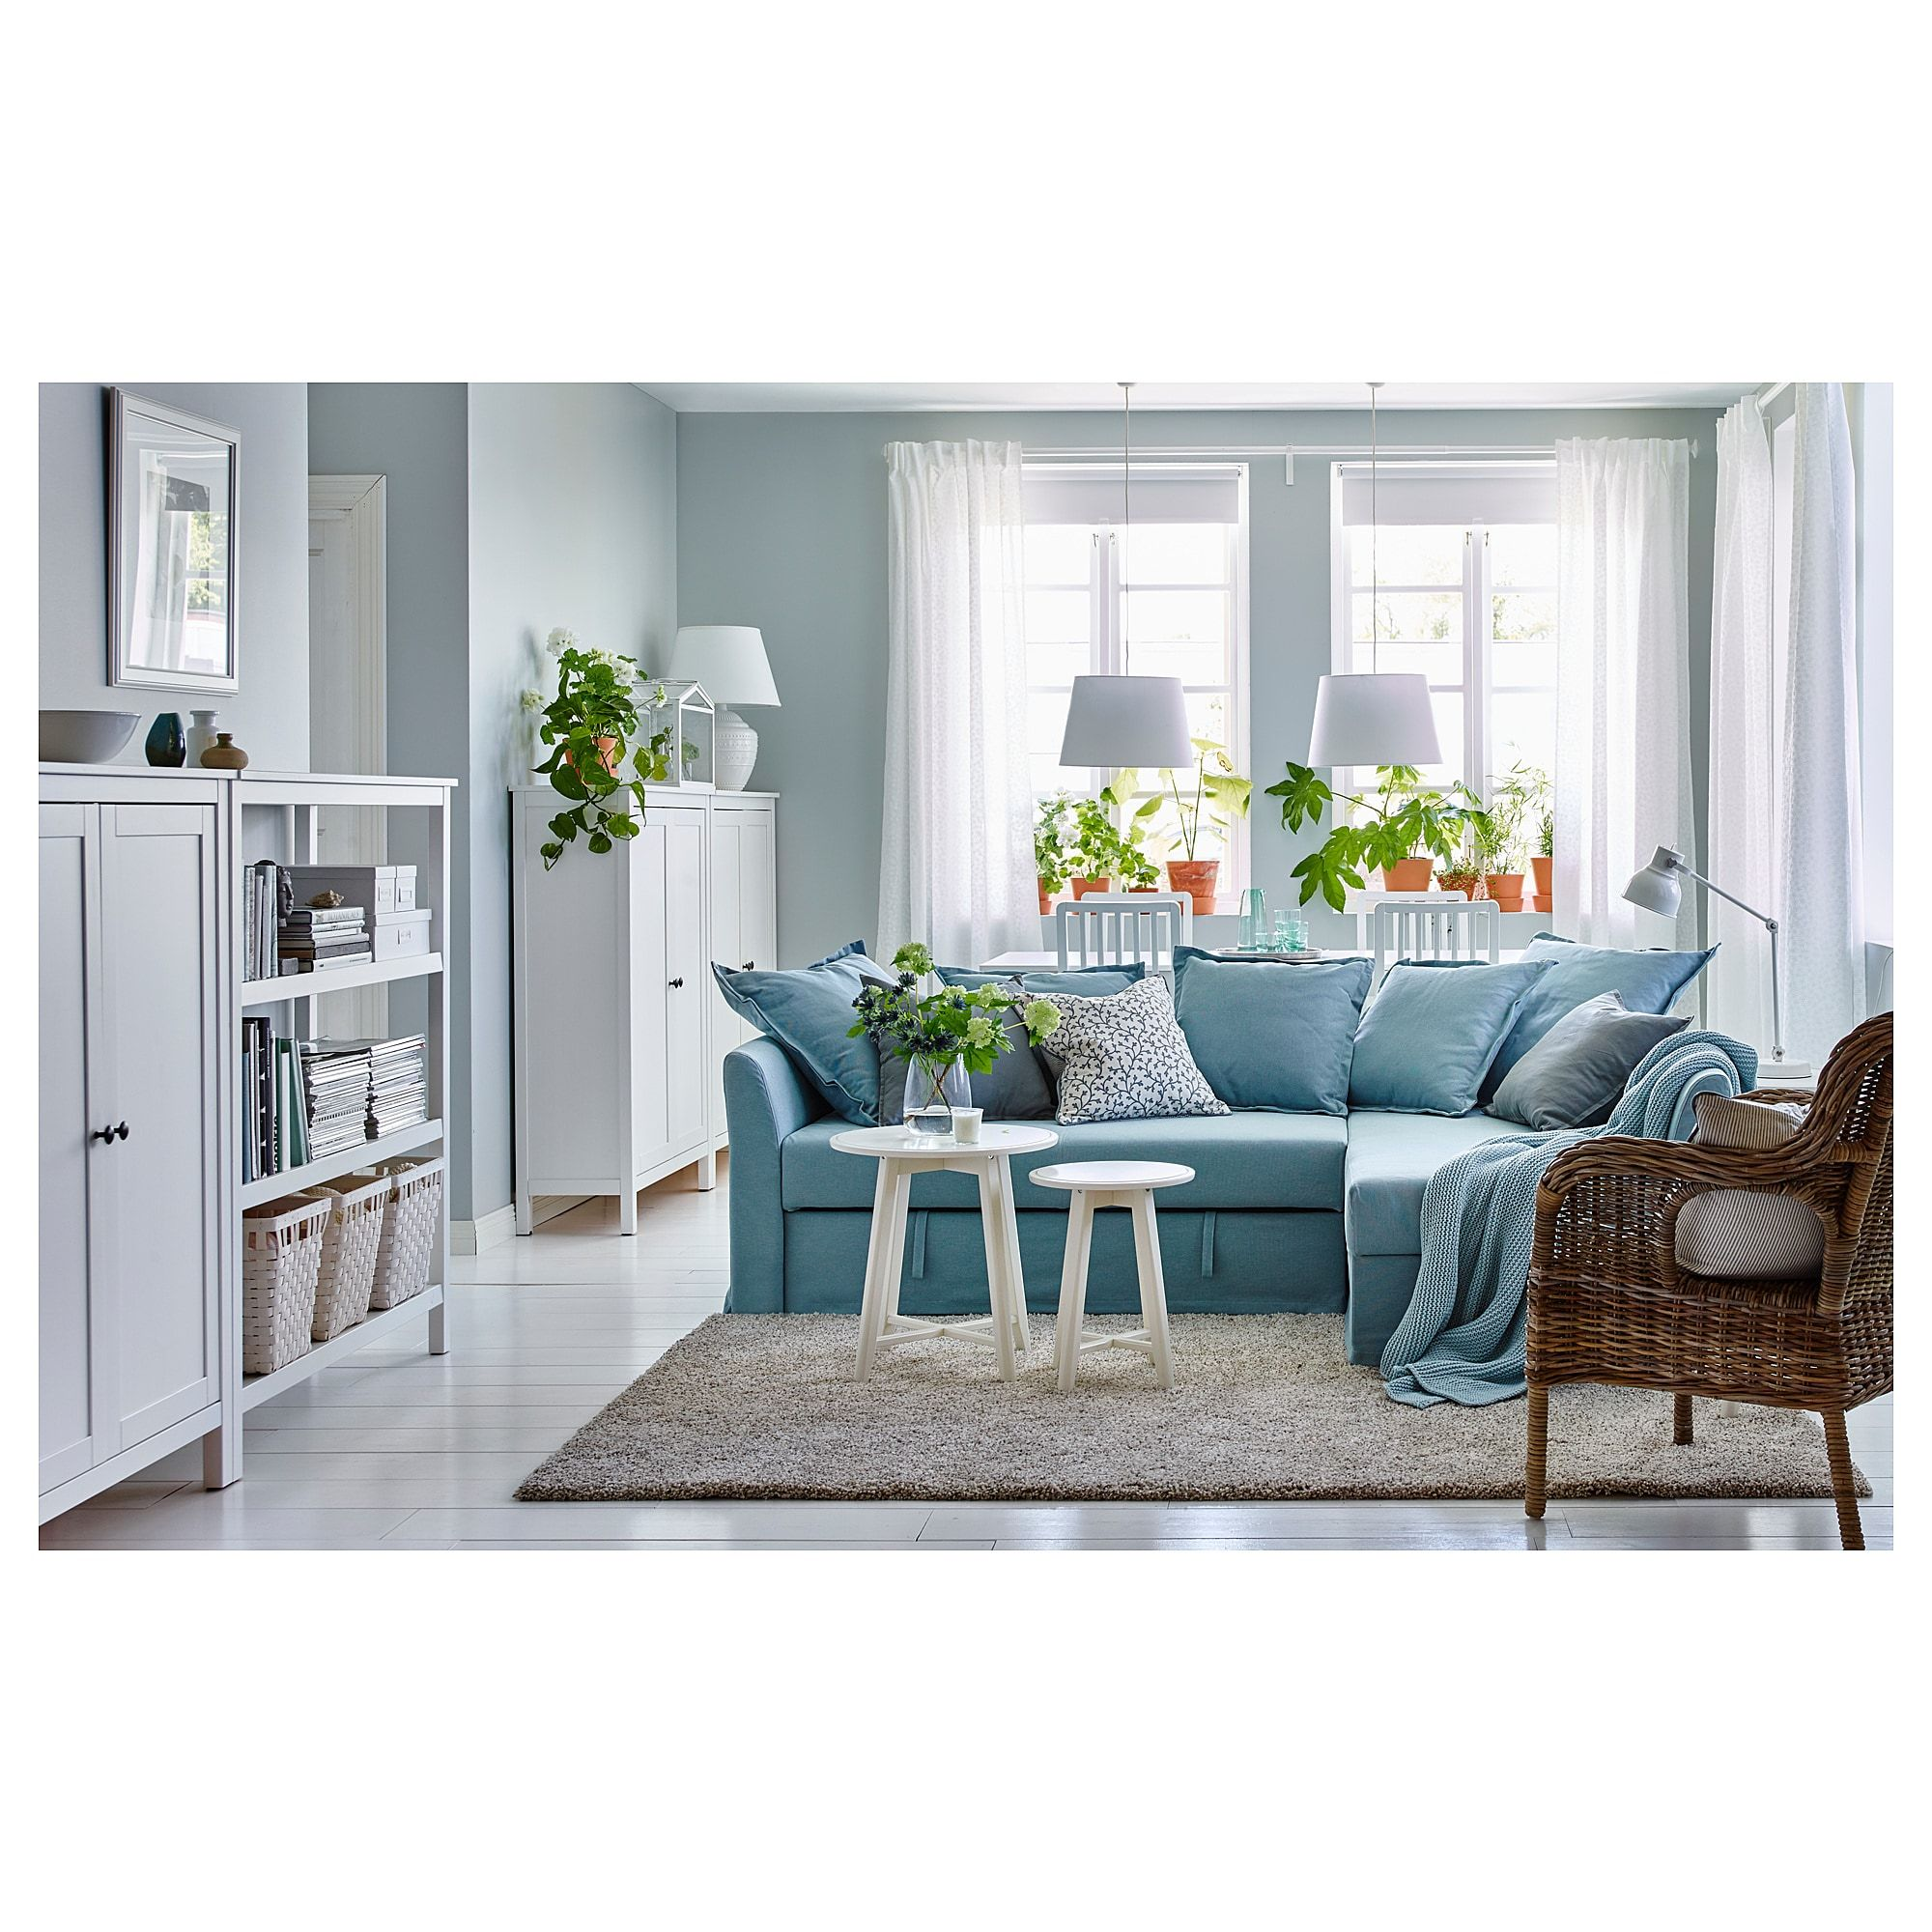 Ikea Holmsund Corner Sofa Bed Orrsta Light Blue In 2019